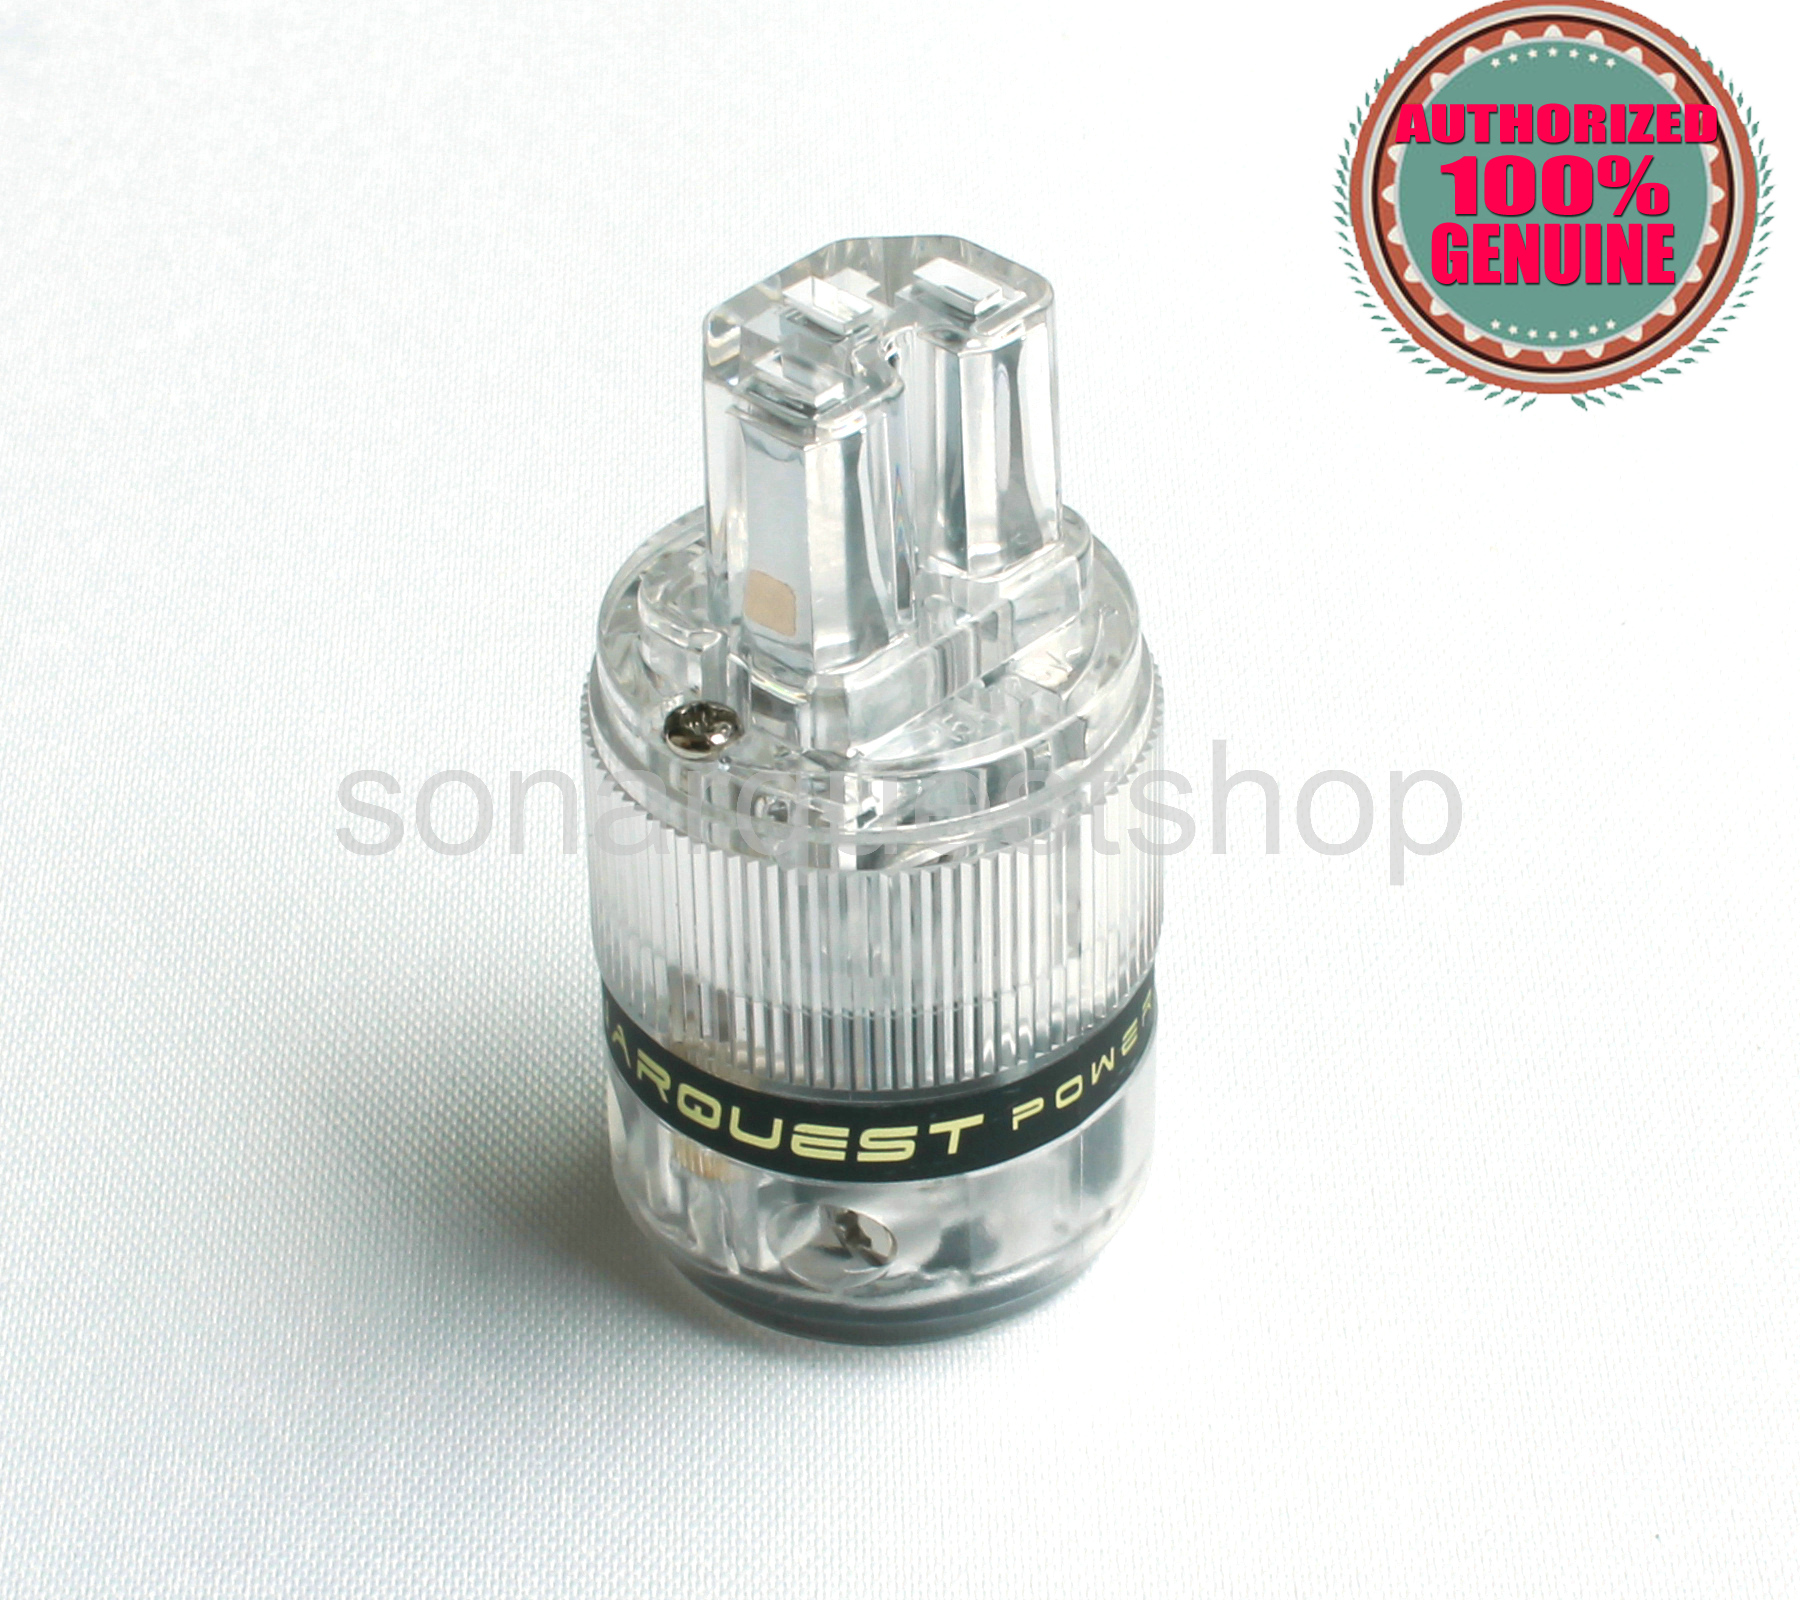 SONARQUEST ST-PC(T) Platinum Plated IEC Connector ALL Transparent